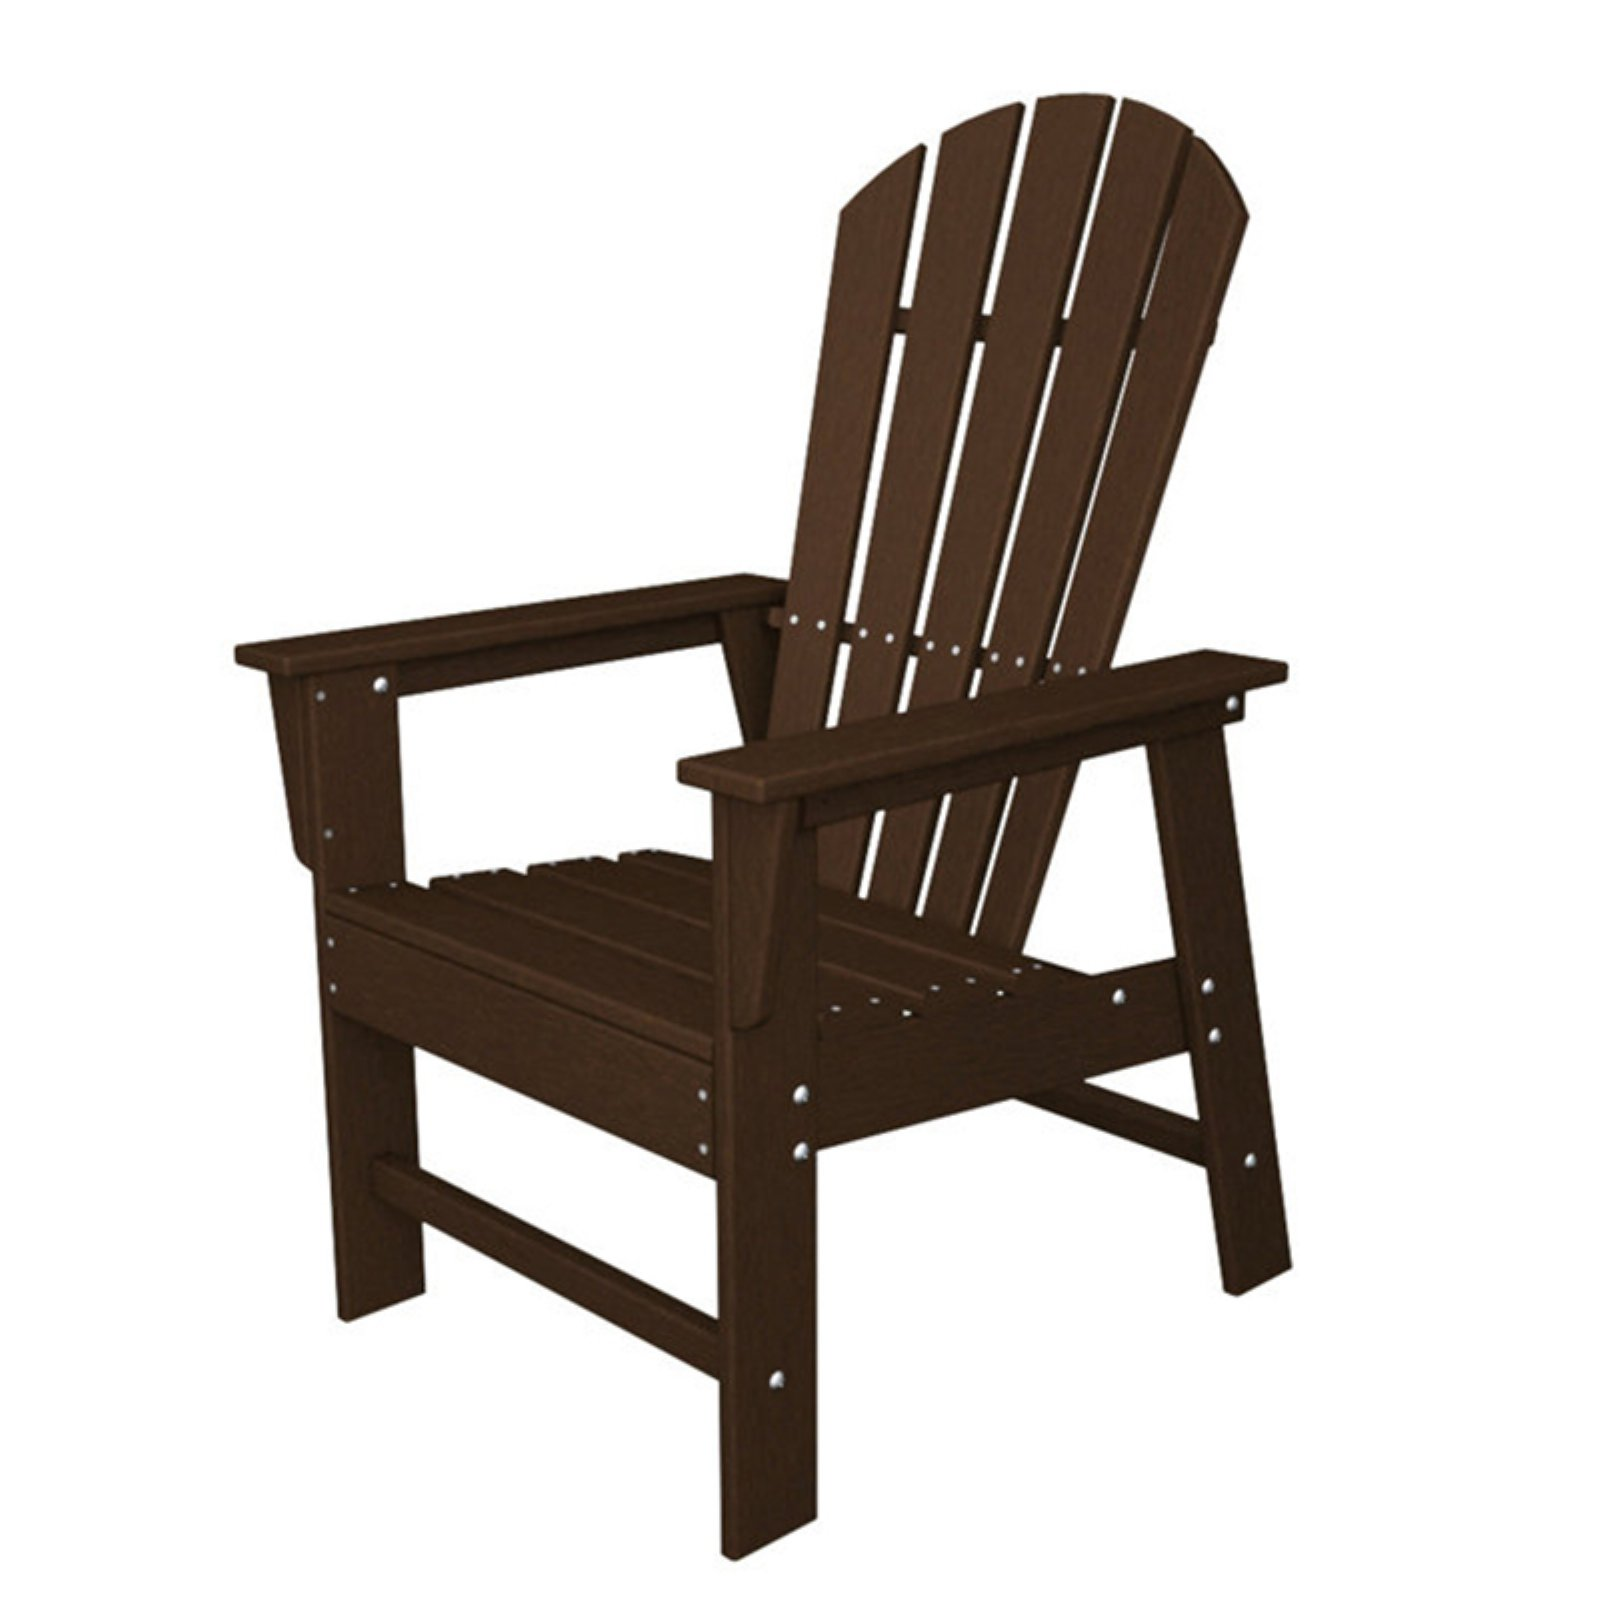 Outdoor POLYWOOD® South Beach Recycled Plastic Adirondack